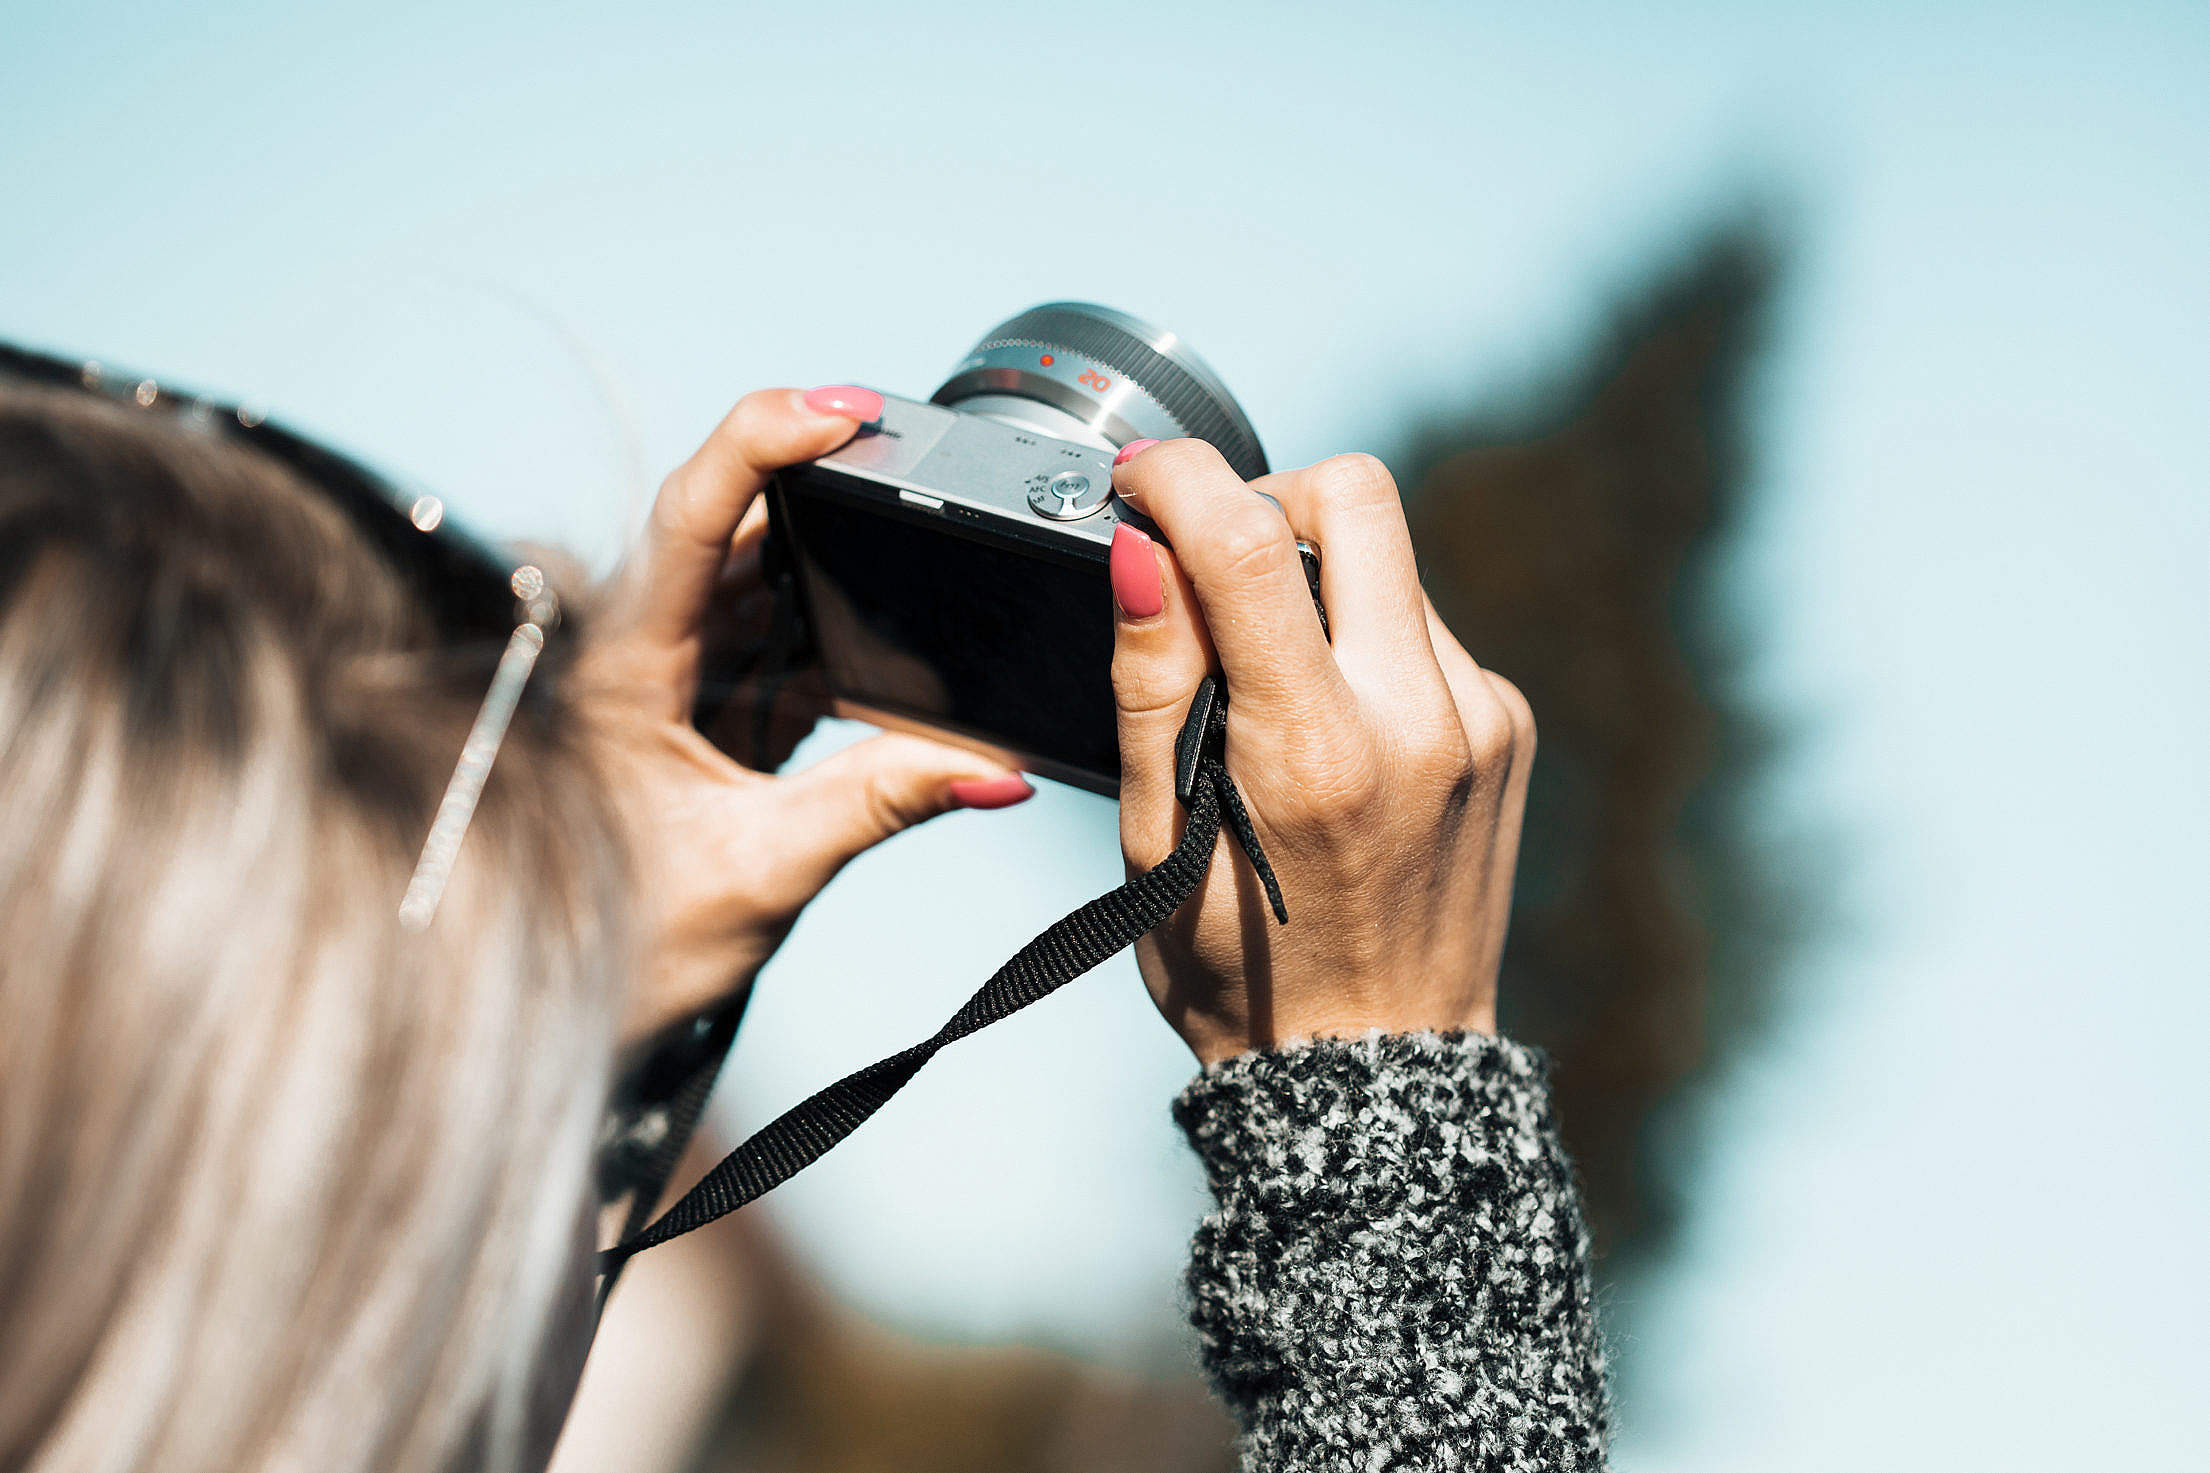 (click to download) Taking a Photo with Small Mirrorless Camera #2 FREE Stock Photo